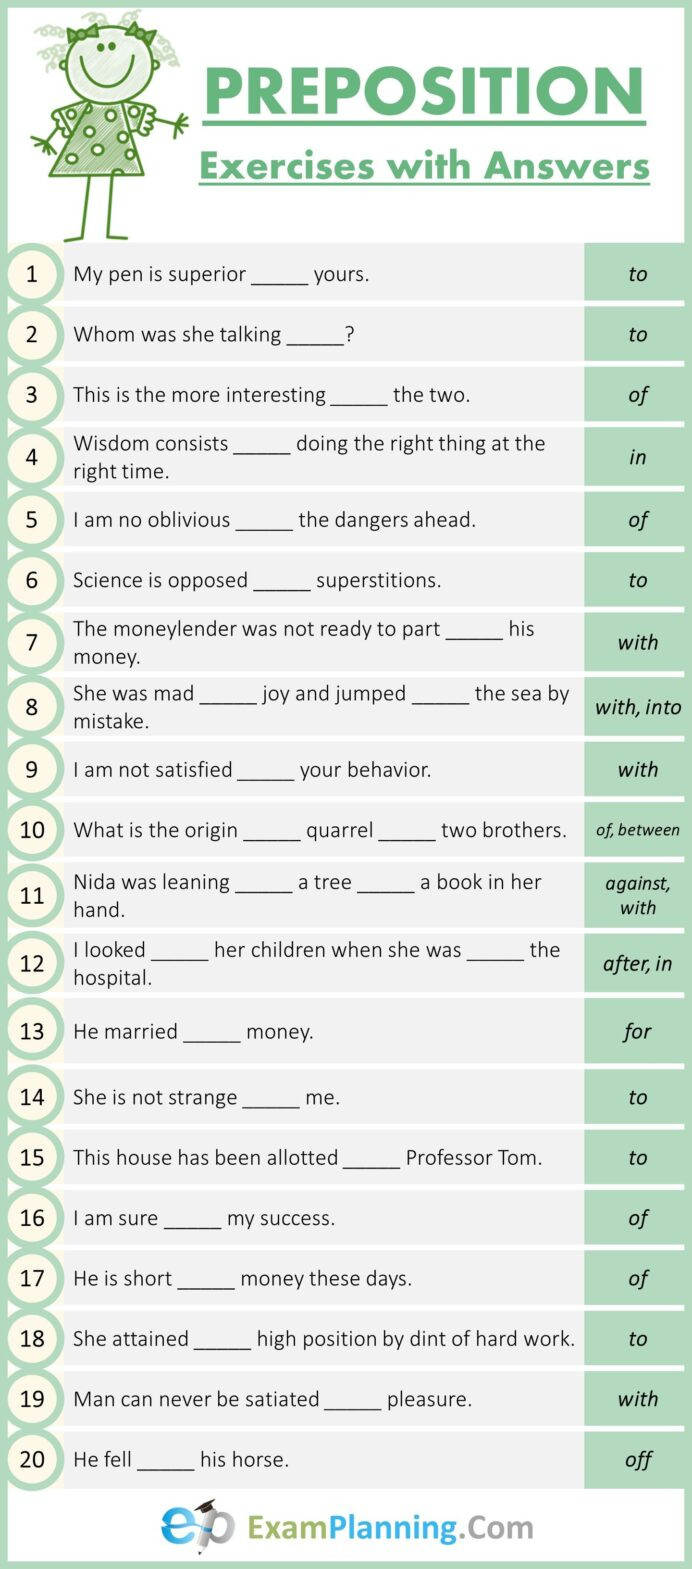 Preposition Worksheets for Middle School Mixed Preposition Exercises with Answers English Teaching